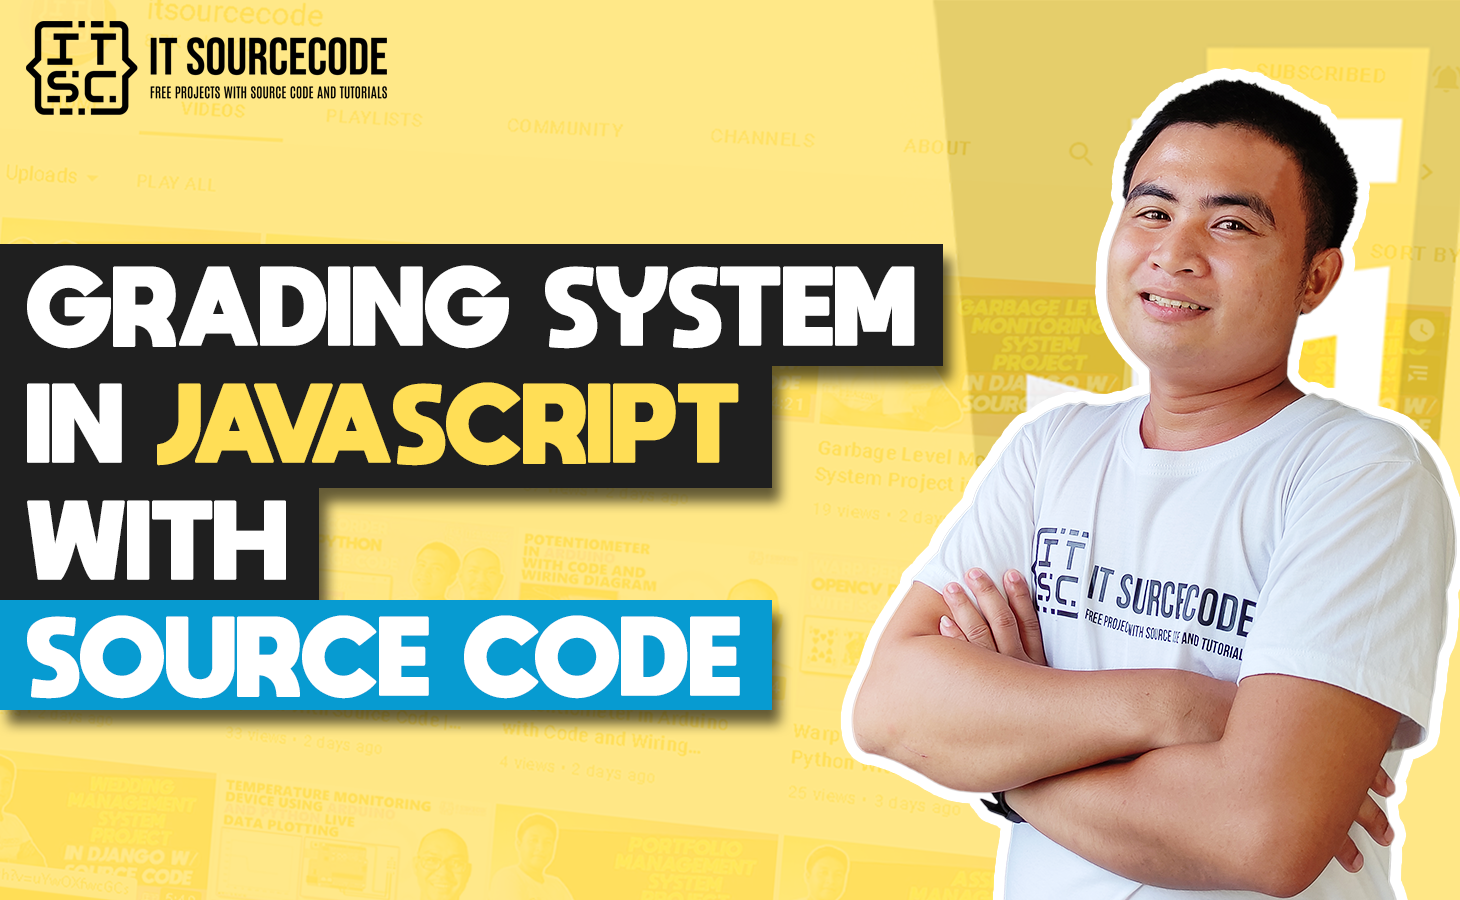 Grading System In Javascript With Source Code